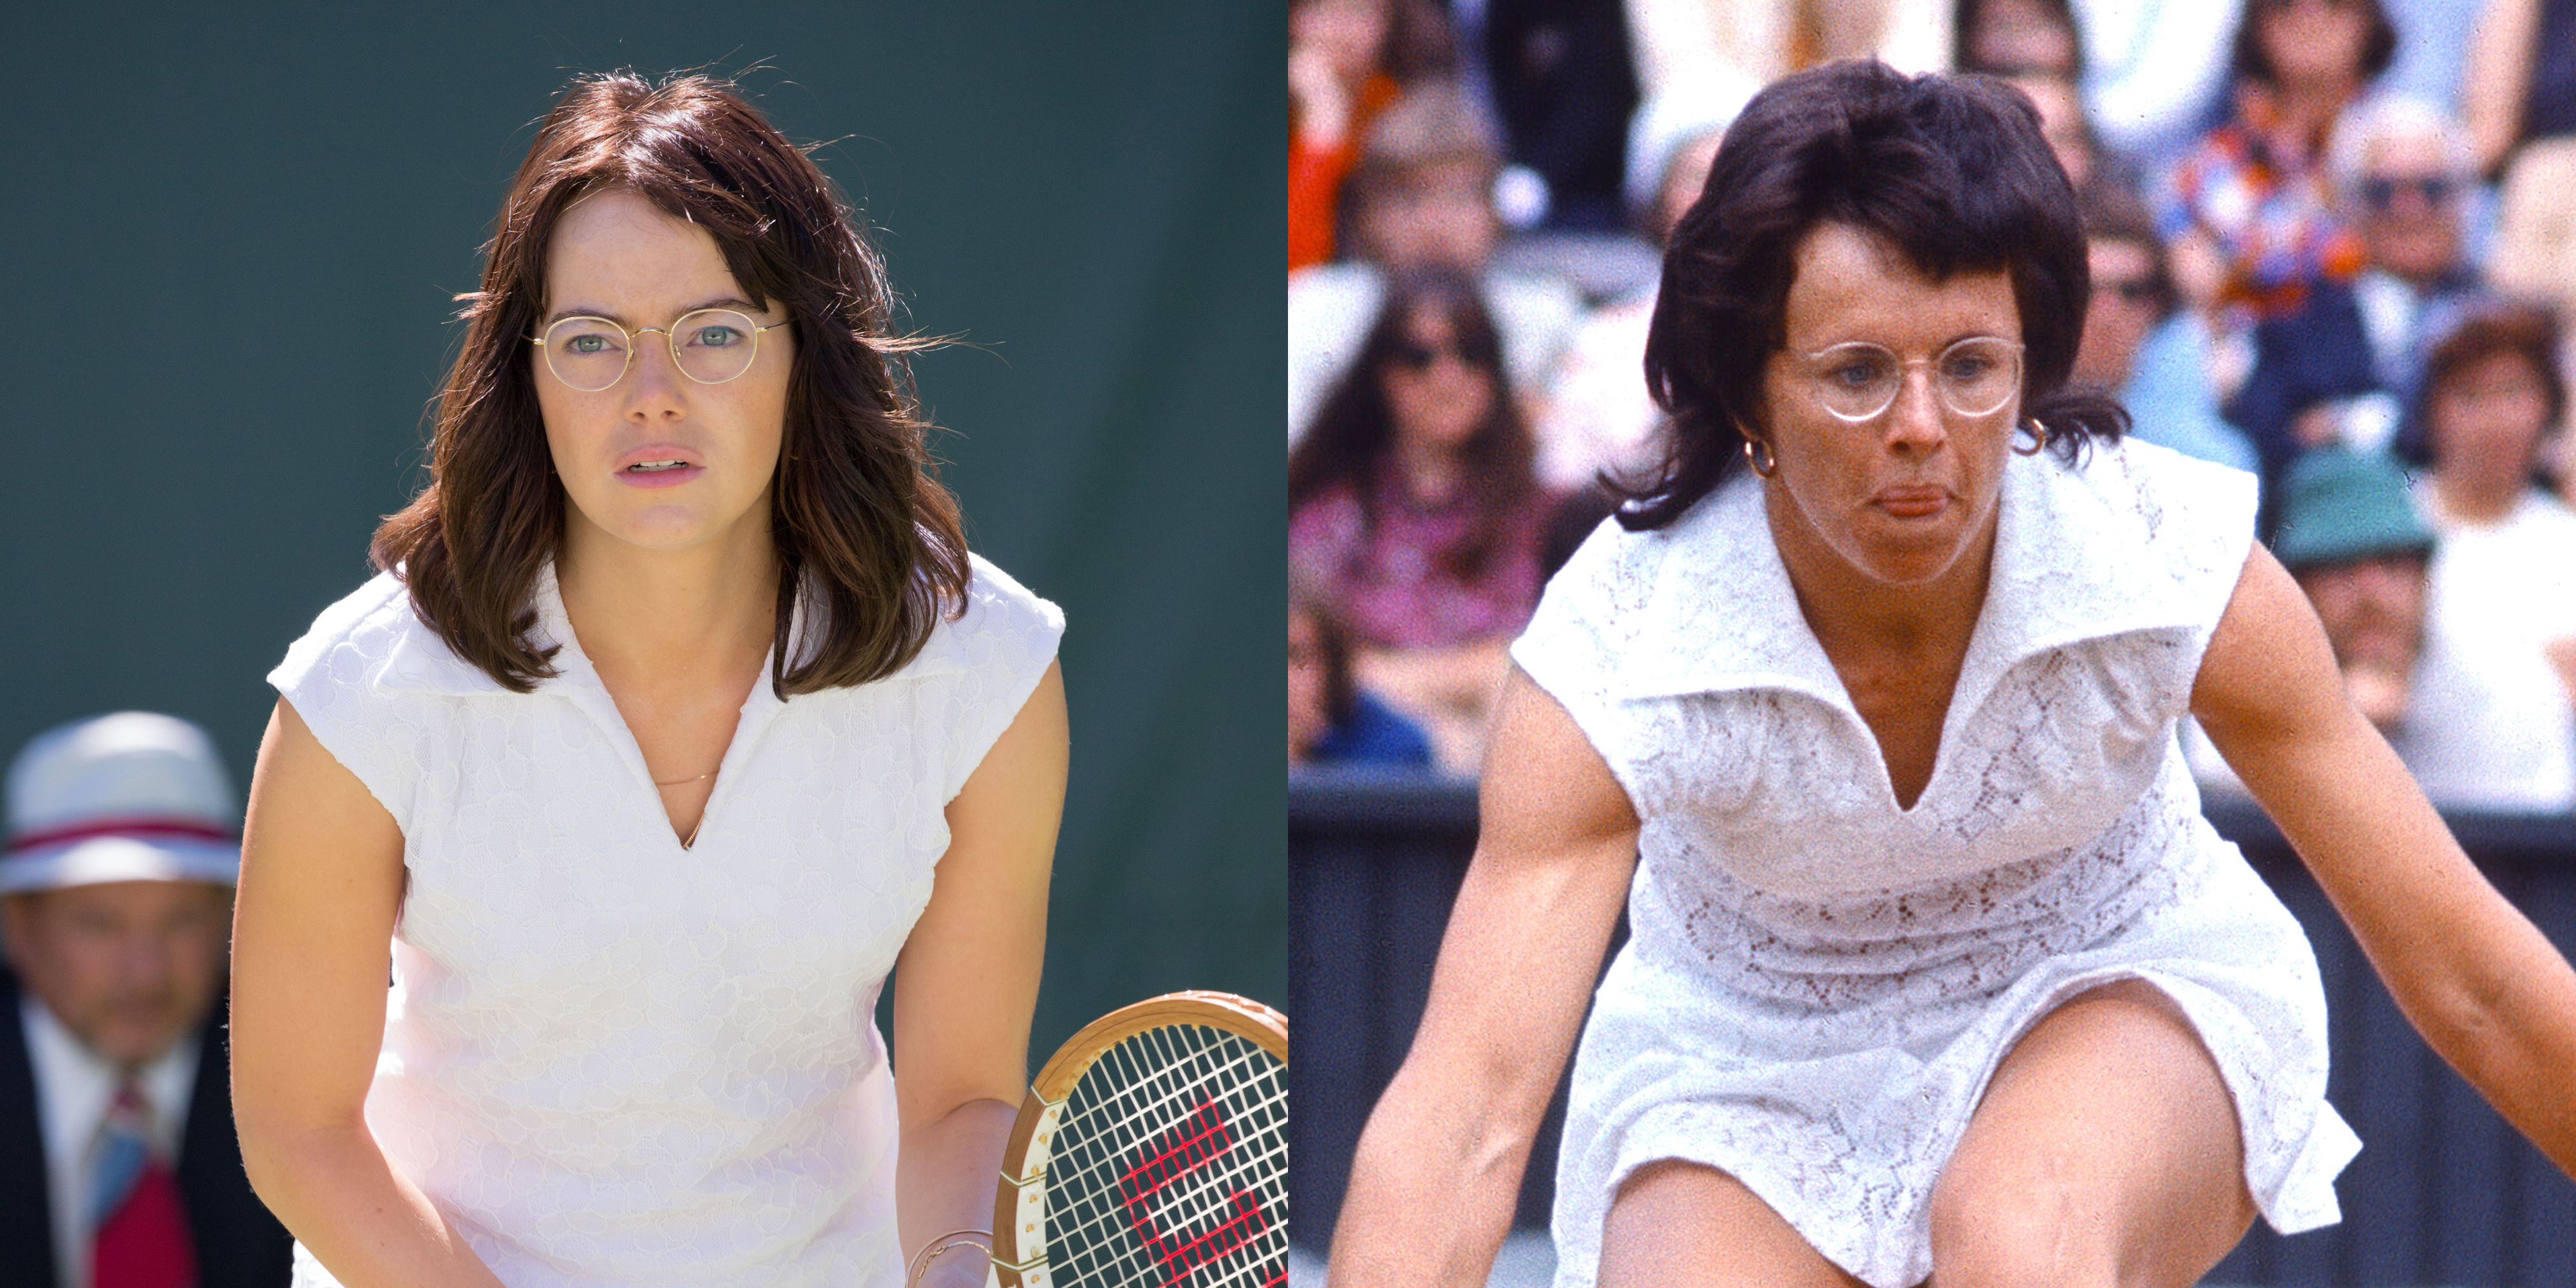 "<p>Stone portrays legendary tennis star Billie Jean King in the upcoming movie <em data-redactor-tag=""em"">Battle of the Sexes. </em>""Playing Billie Jean was a bit of a game changer,"" she <a href=""http://www.marieclaire.com/celebrity/a28644/emma-stone-september-2017-cover/"" data-tracking-id=""recirc-text-link"" target=""_blank"">tells</a> <em data-redactor-tag=""em"">Marie Claire</em>. She also gained <a href=""http://www.hollywoodreporter.com/news/oscars-why-emma-stone-gained-15-pounds-la-la-land-972564"" data-tracking-id=""recirc-text-link"" target=""_blank"">15 pounds of muscle</a> for the role. Fifteen. Pounds. <span class=""redactor-invisible-space"" data-verified=""redactor"" data-redactor-tag=""span"" data-redactor-class=""redactor-invisible-space""></span></p>"